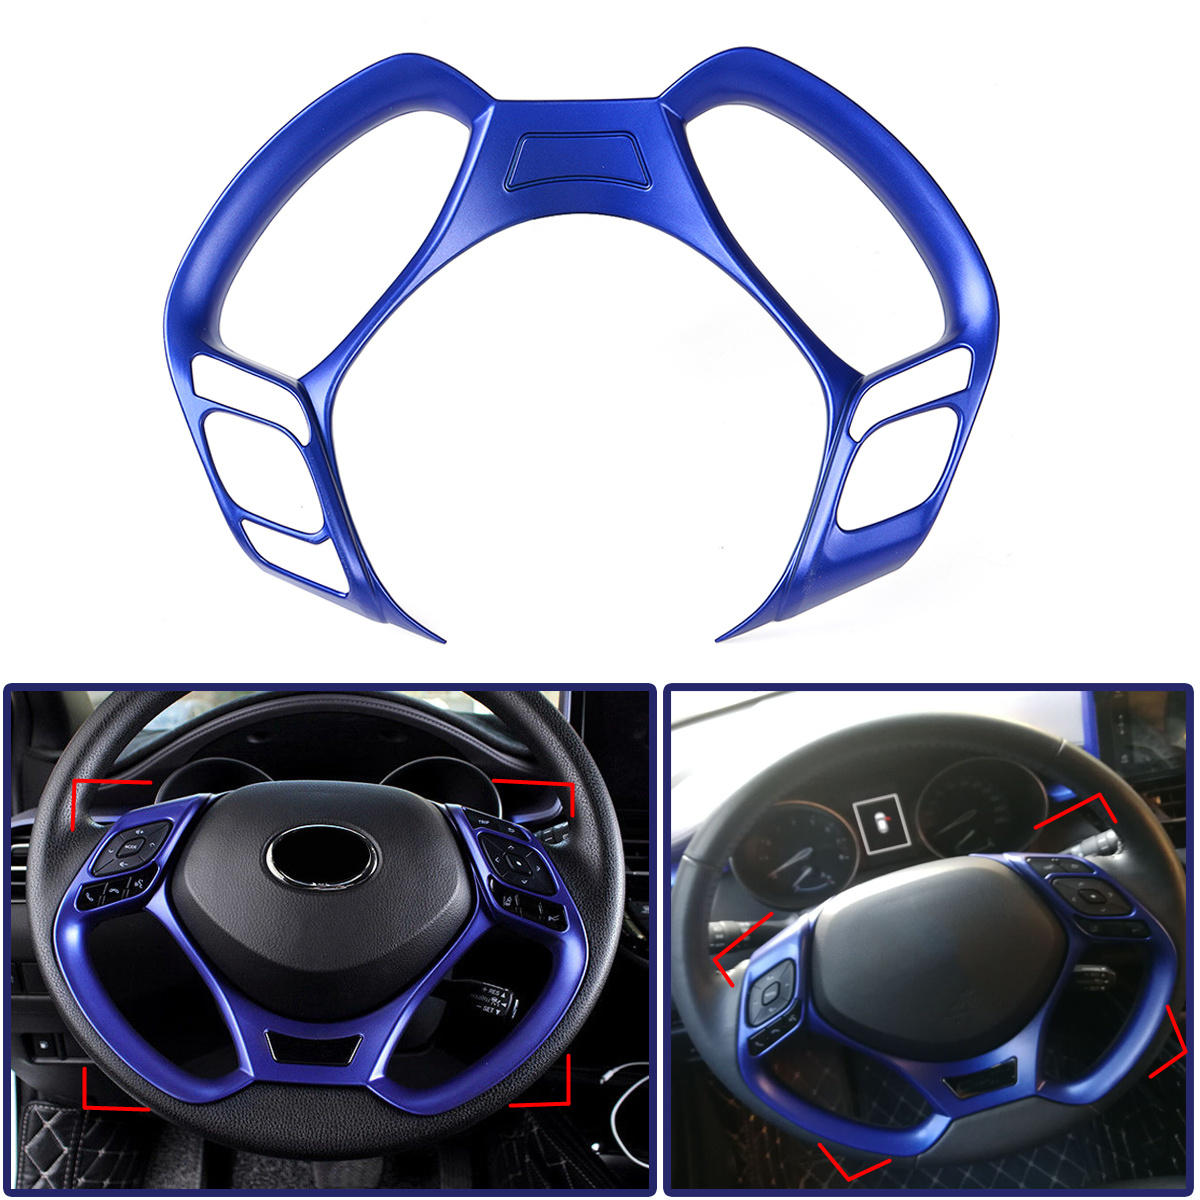 hight resolution of car interior steering wheel button covers trim blue decoration for toyota c hr 2016 2017 2018 2019 cod